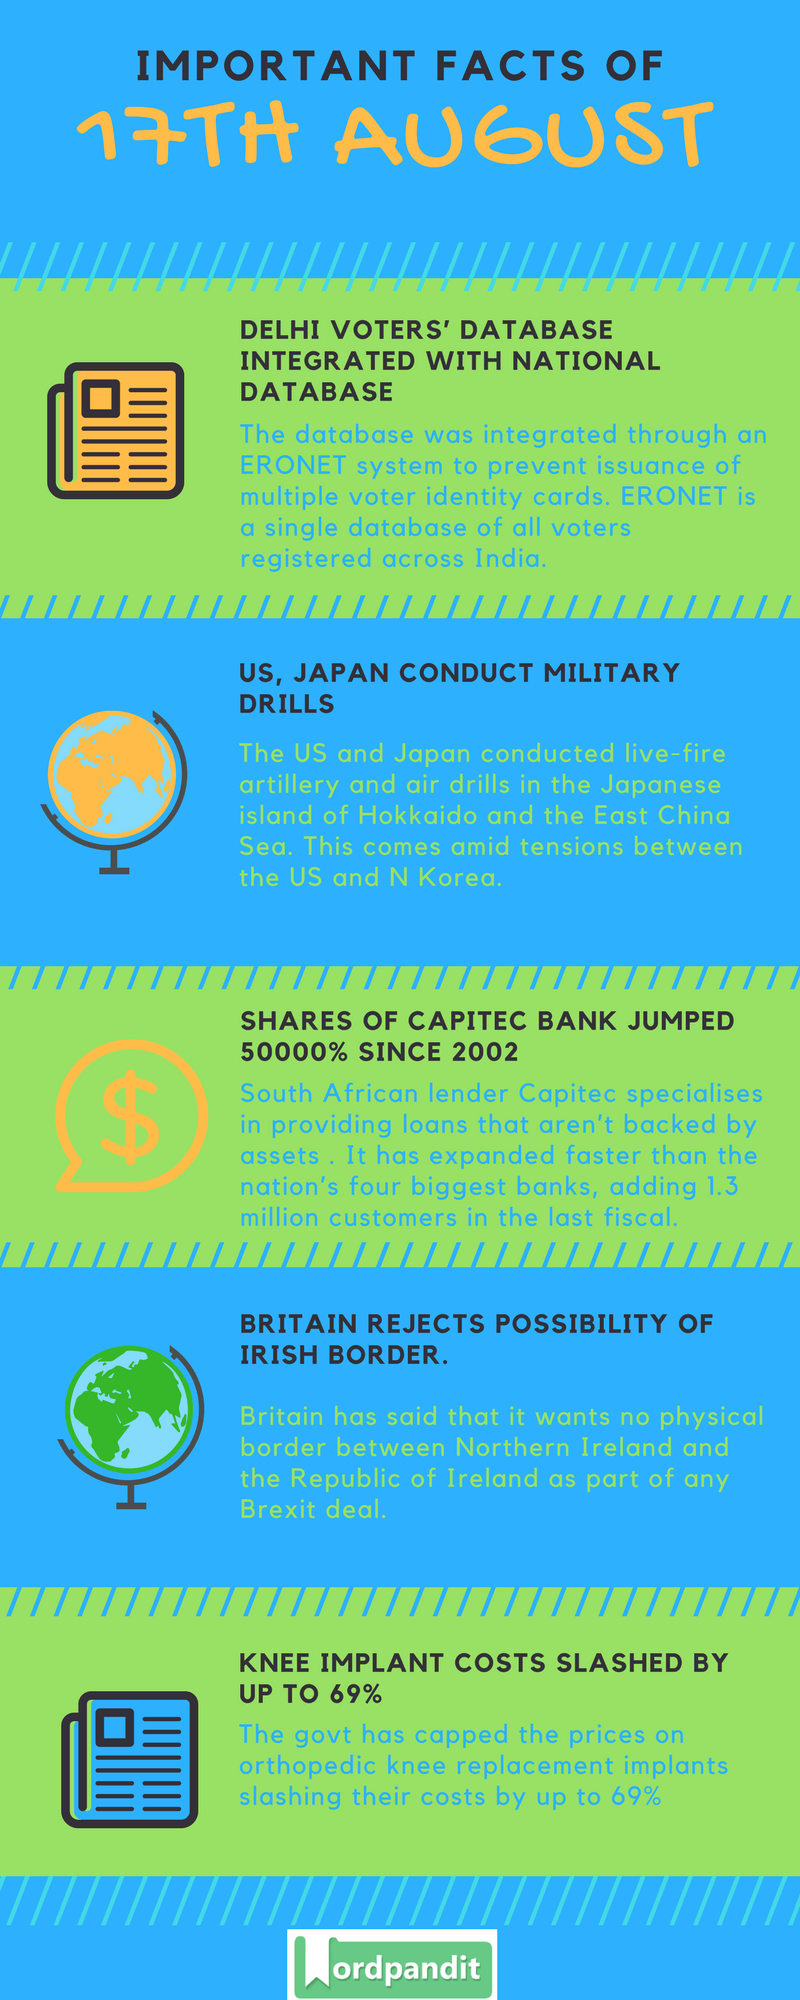 Daily-Current-Affairs-17-august-2017-Current-Affairs-Quiz-august-17-2017-Current-Affairs-Infographic